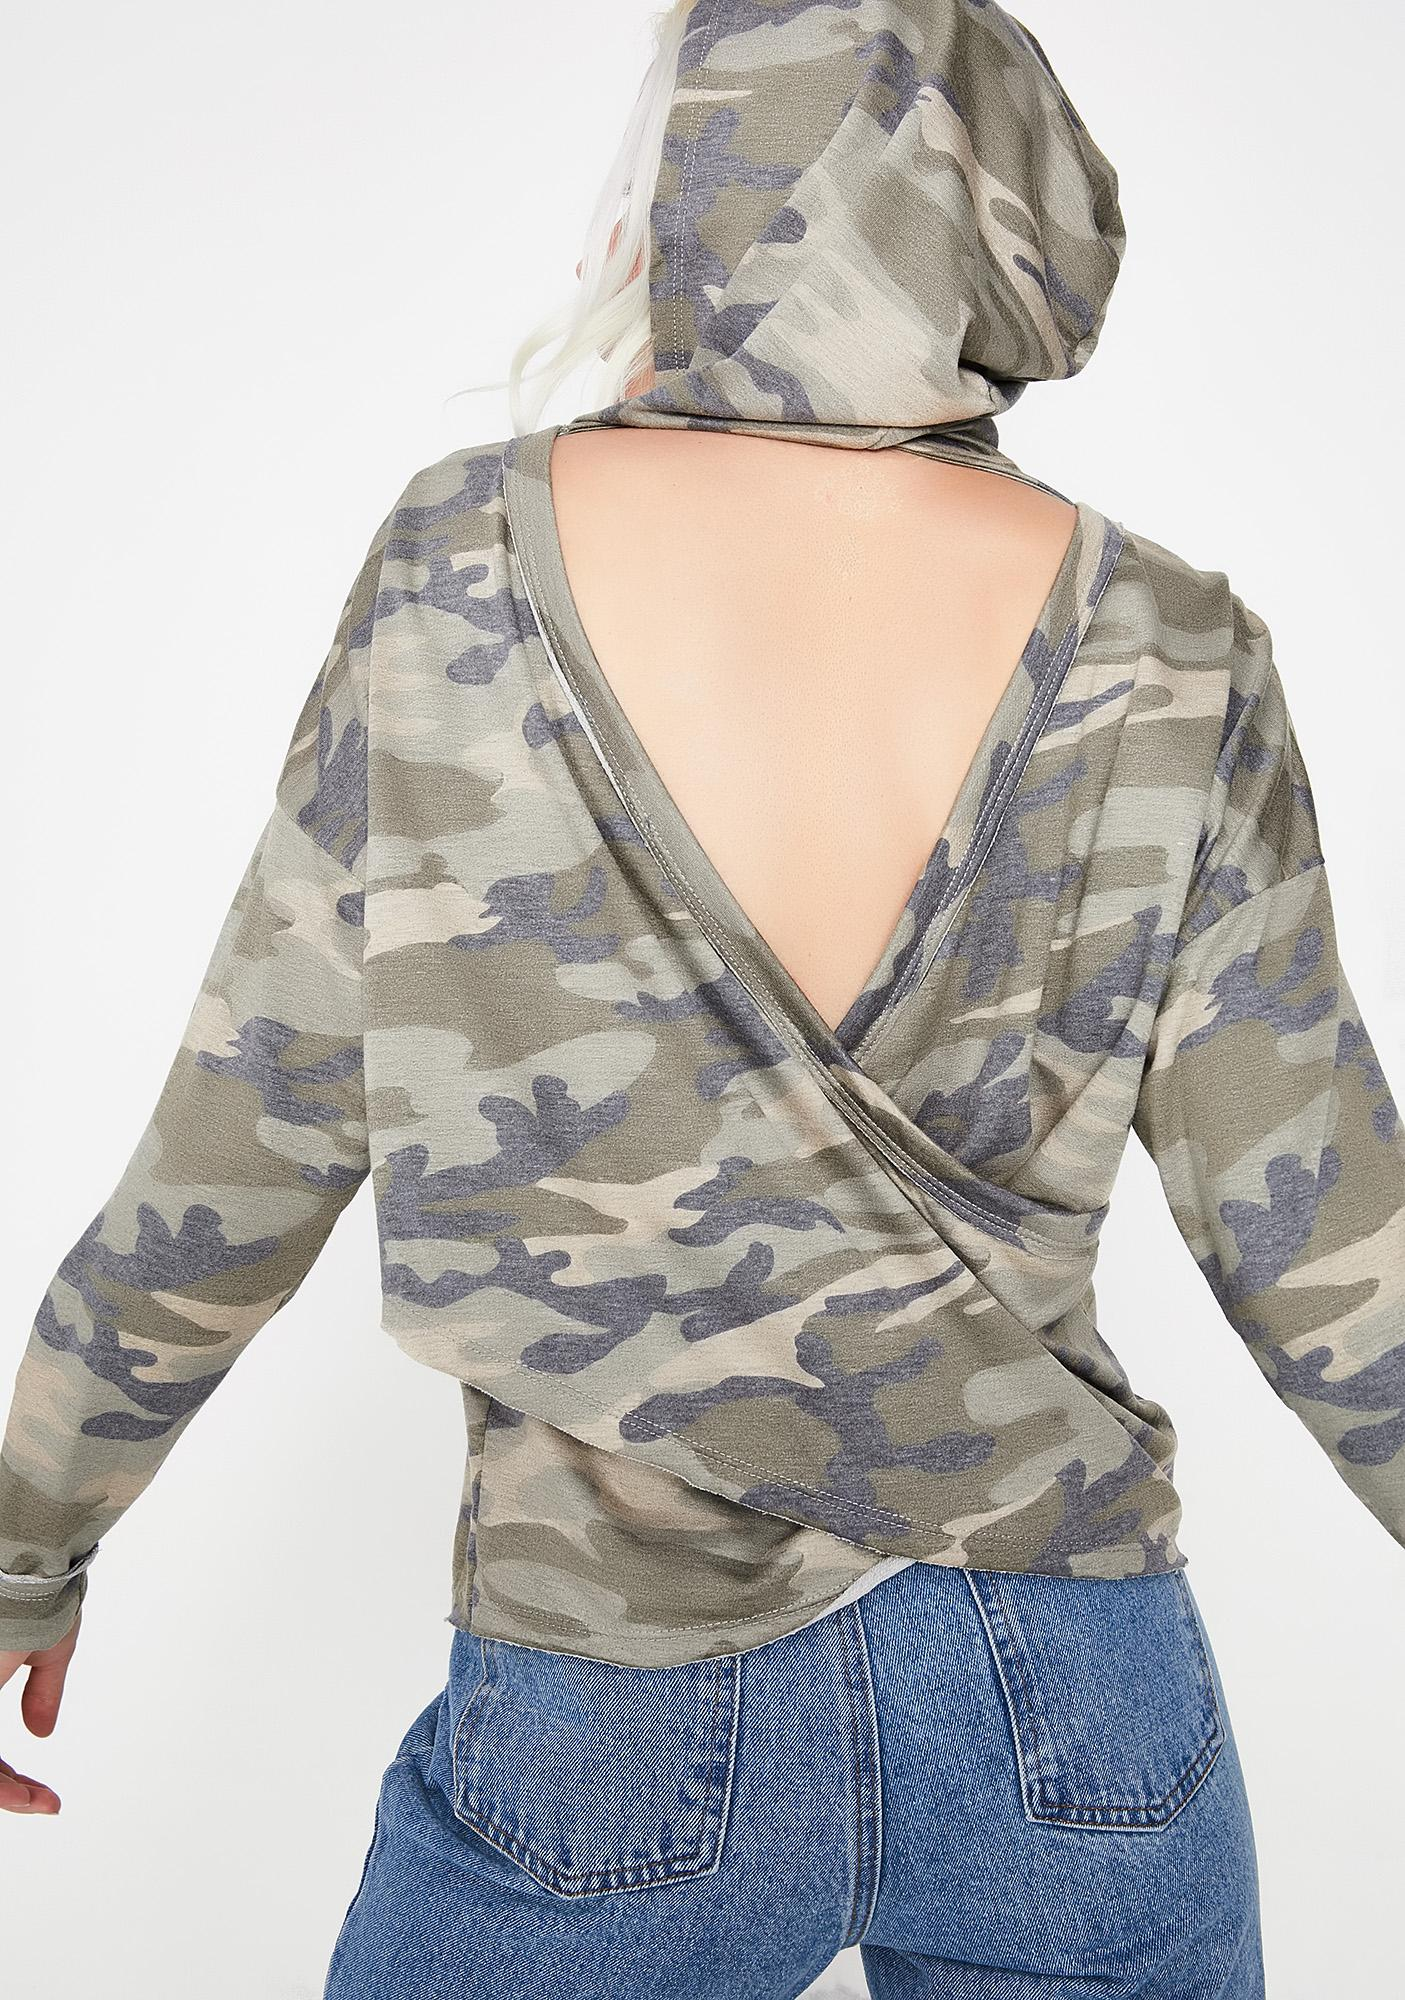 Disguise Yourself Camo Hoodie